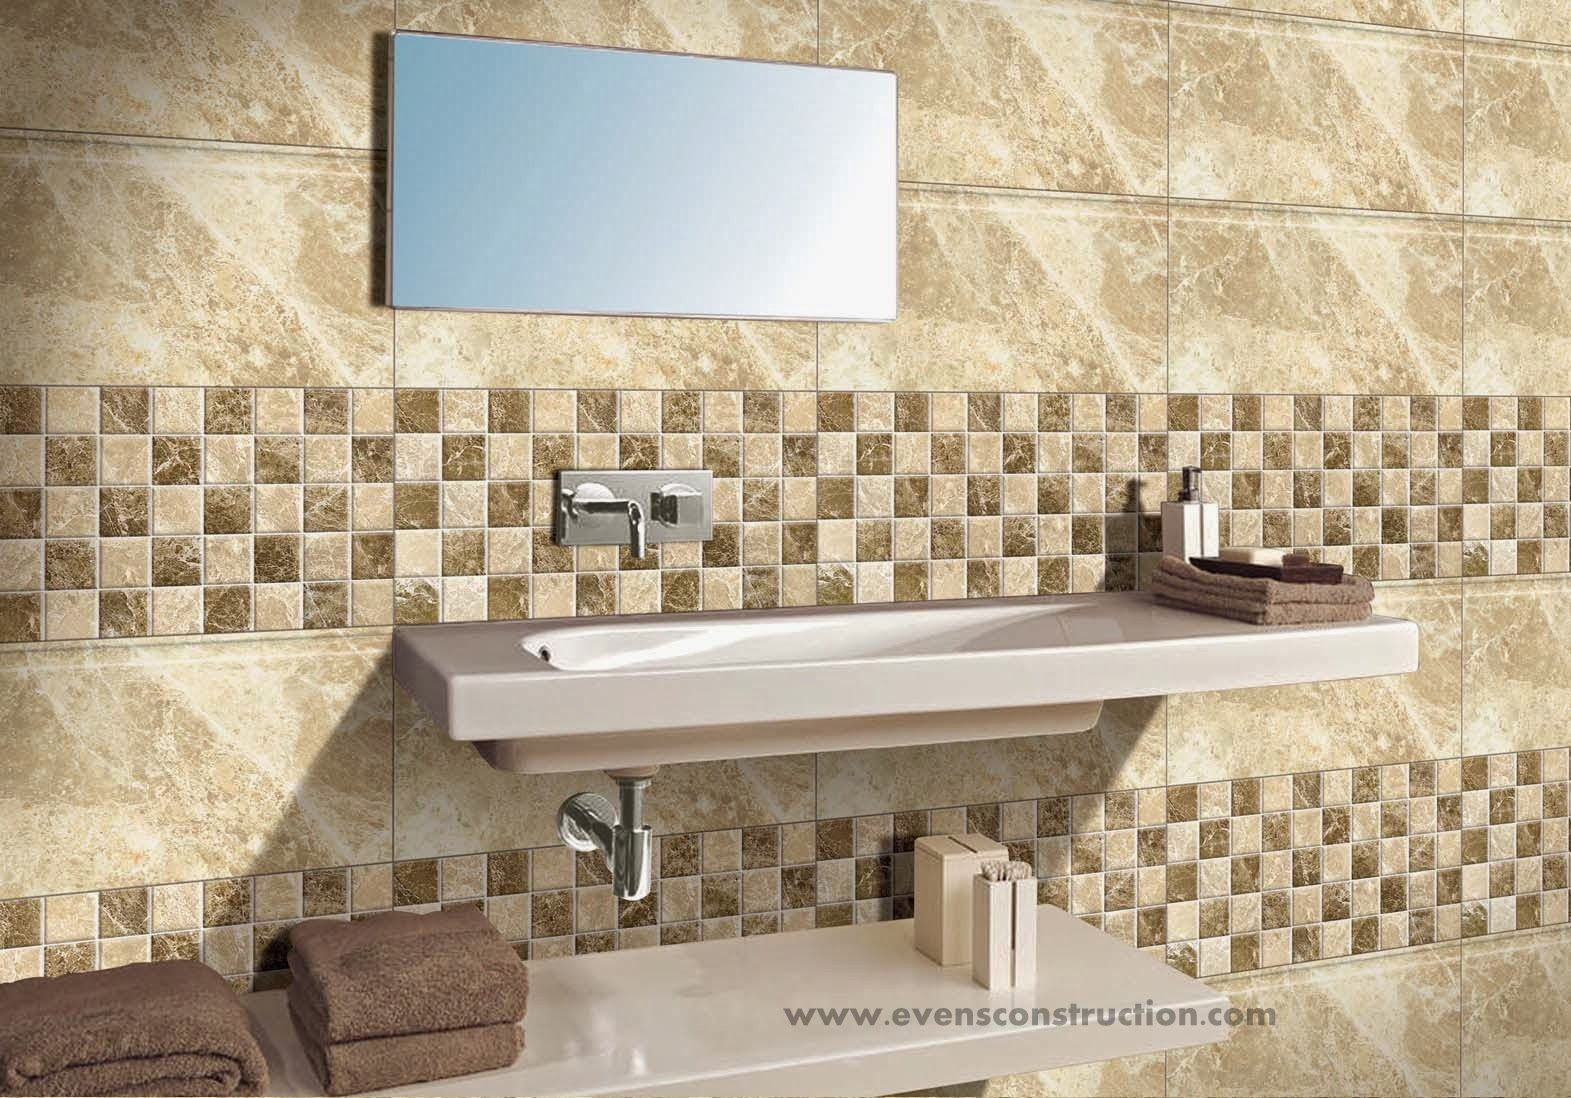 Evens Construction Pvt Ltd Bathroom Tiles Gallery